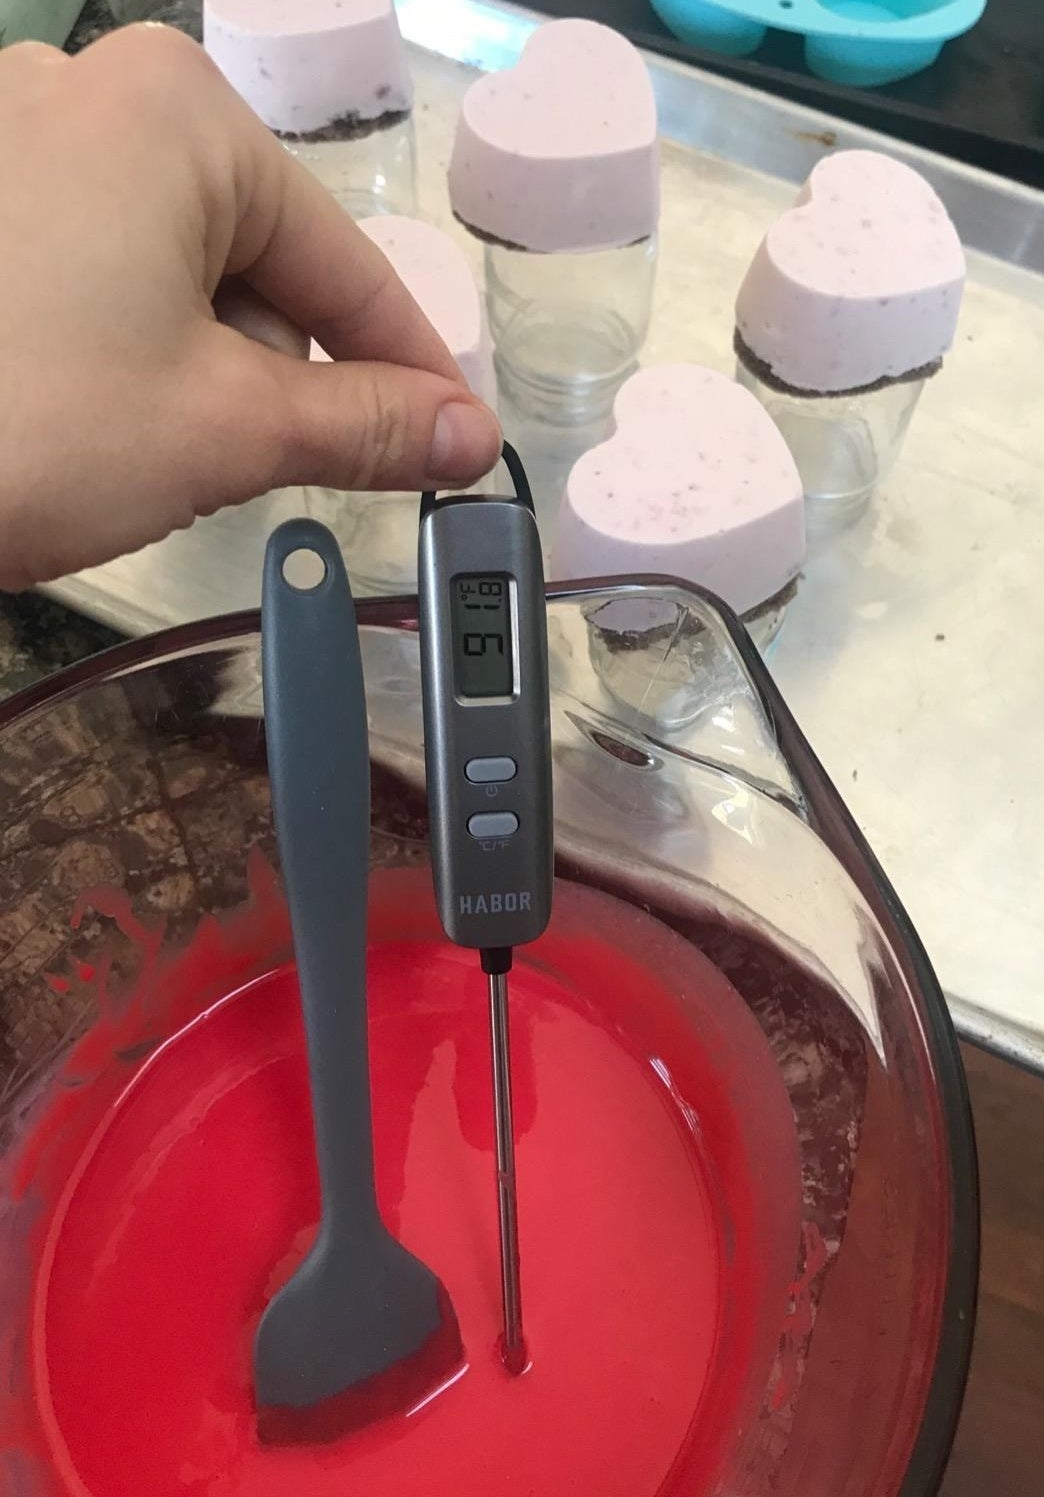 Reviewer using the thermometer, which features a digital display, to measure the temperature of a mixture